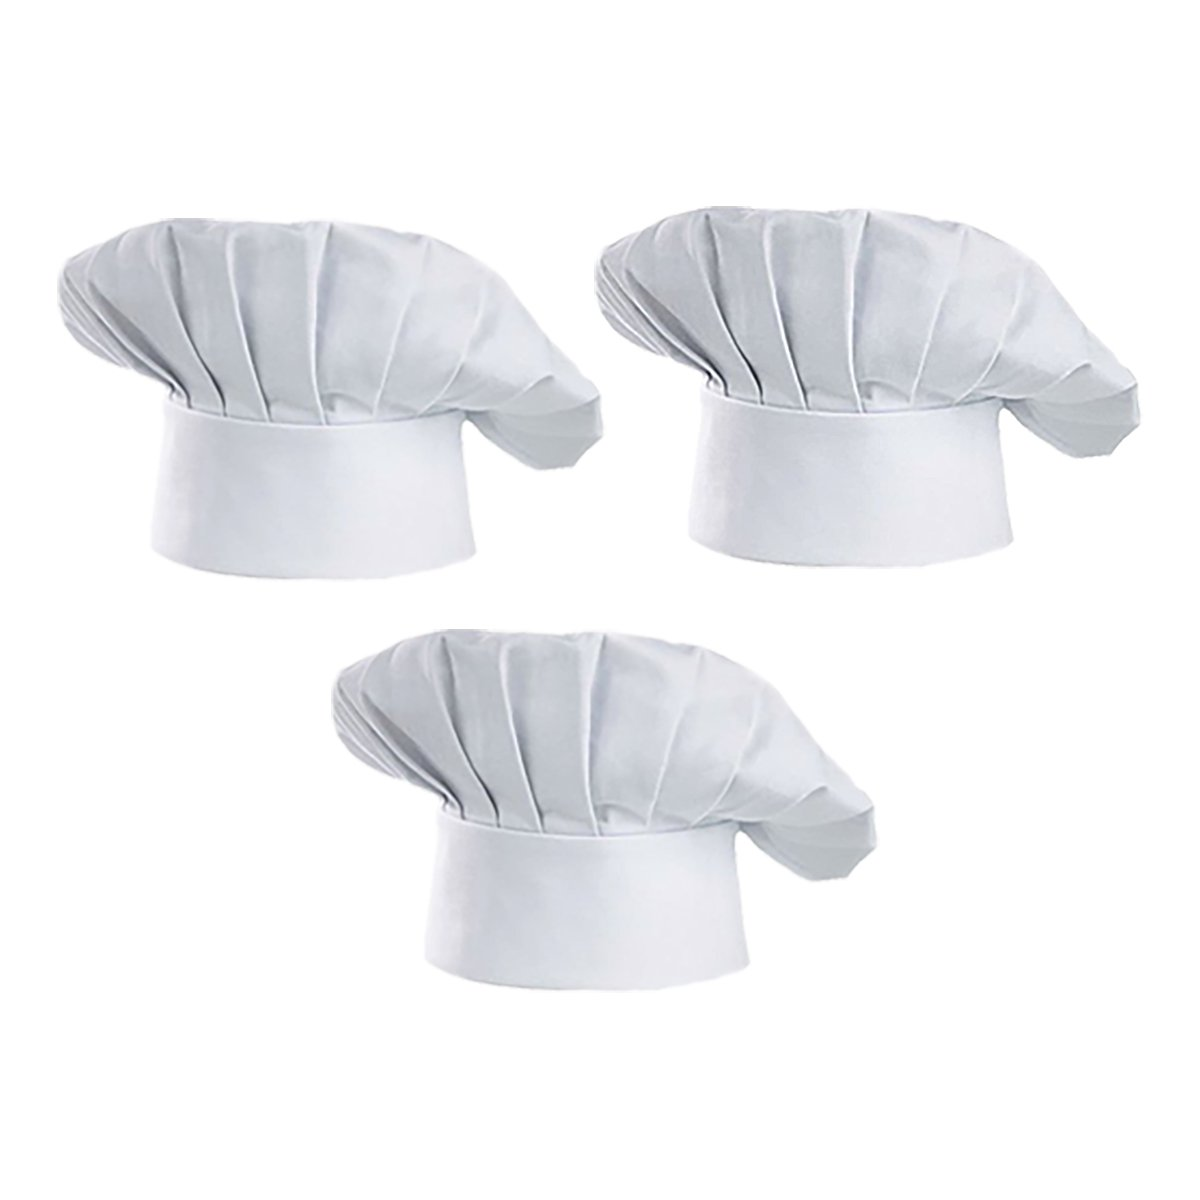 Chef Hat Set of 3 Adult Adjustable Elastic Baker Kitchen Cooking Chef Catering Cap,White or Black (White)